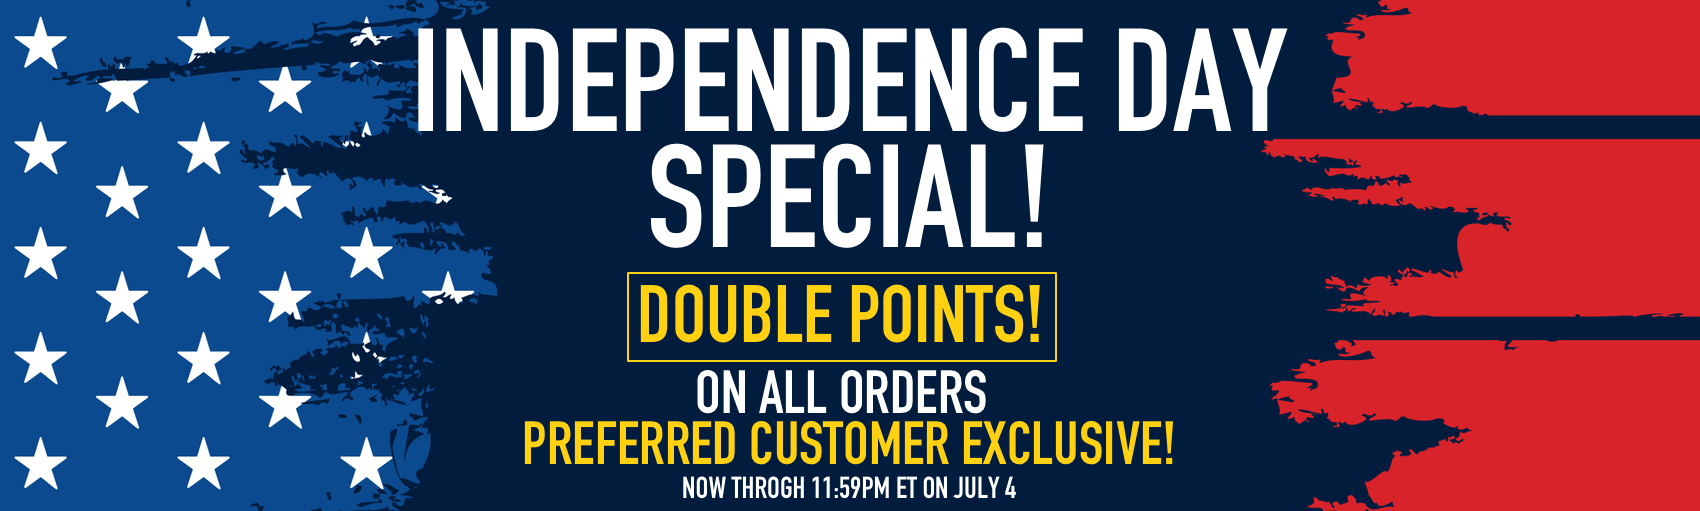 Independence Day 2020 Double Points Only Banner